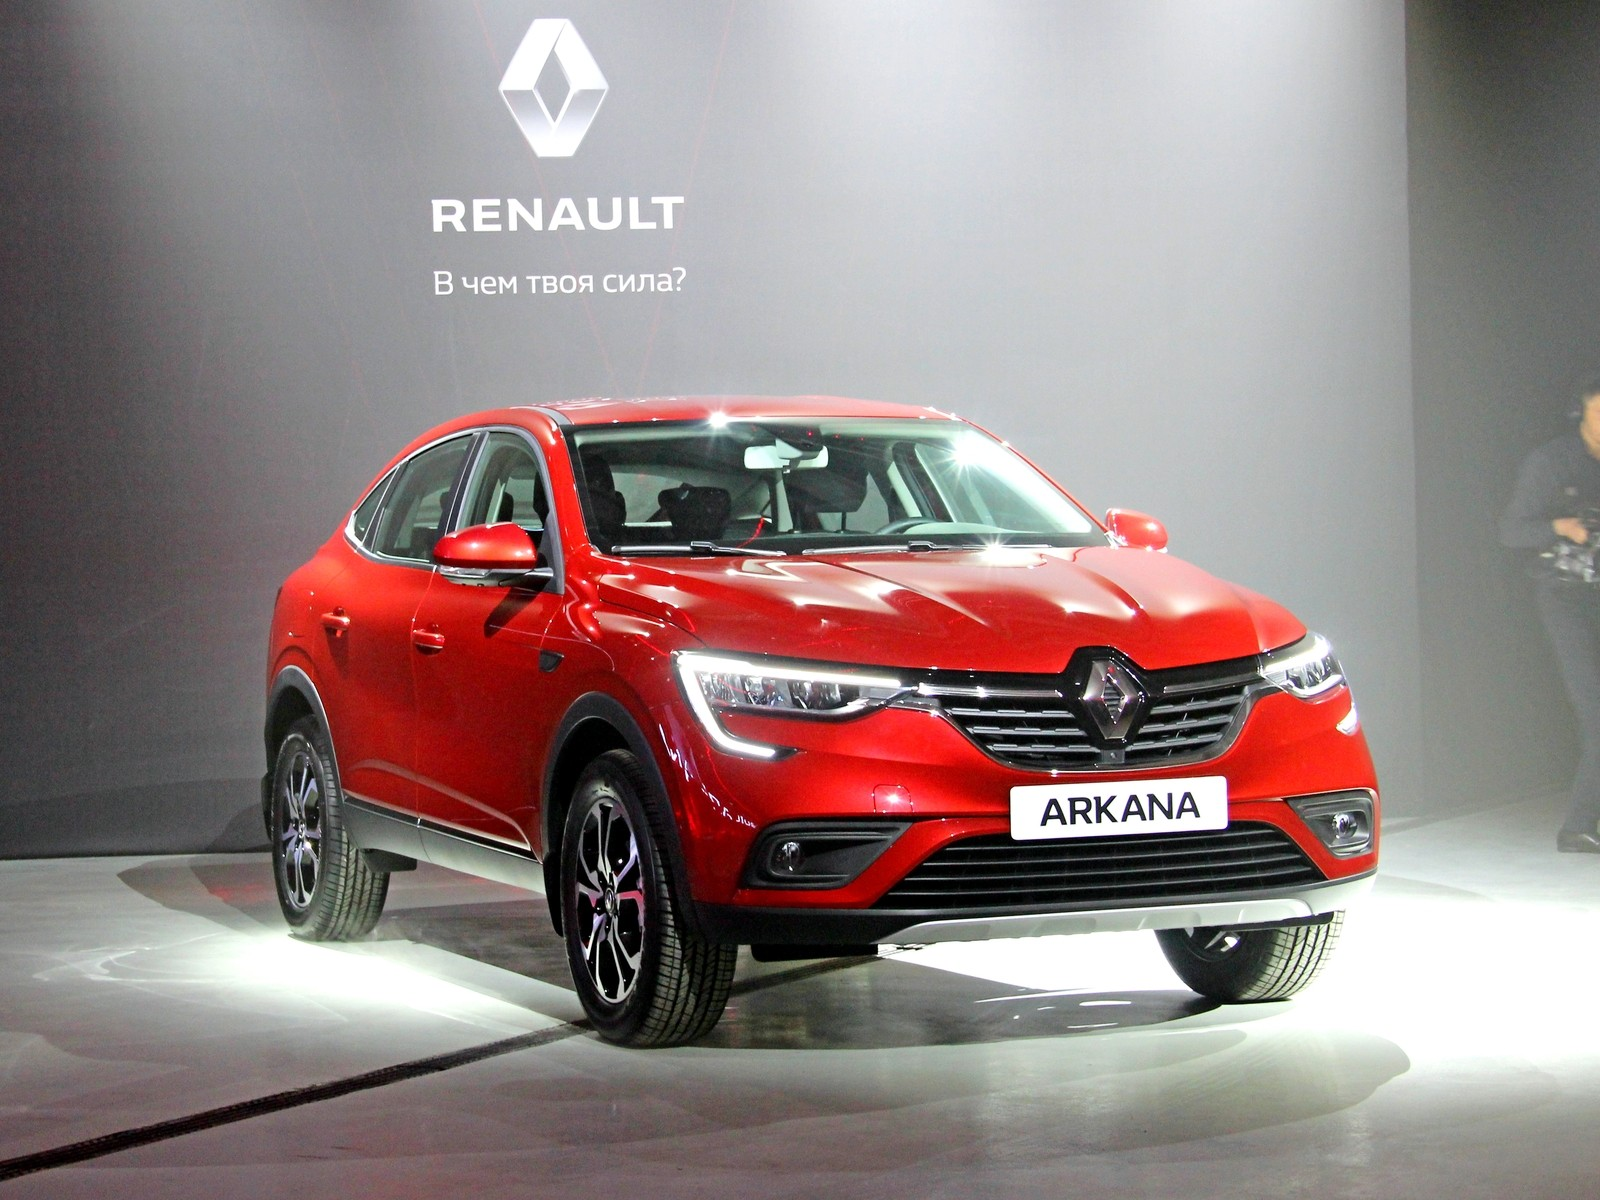 The Renault Arkana coupe/SUV has been on sale in Russia since last year, but its South Korean and Chinese versions remain in development. The latter has just been revealed through patent files, so let us have a closer look at it.